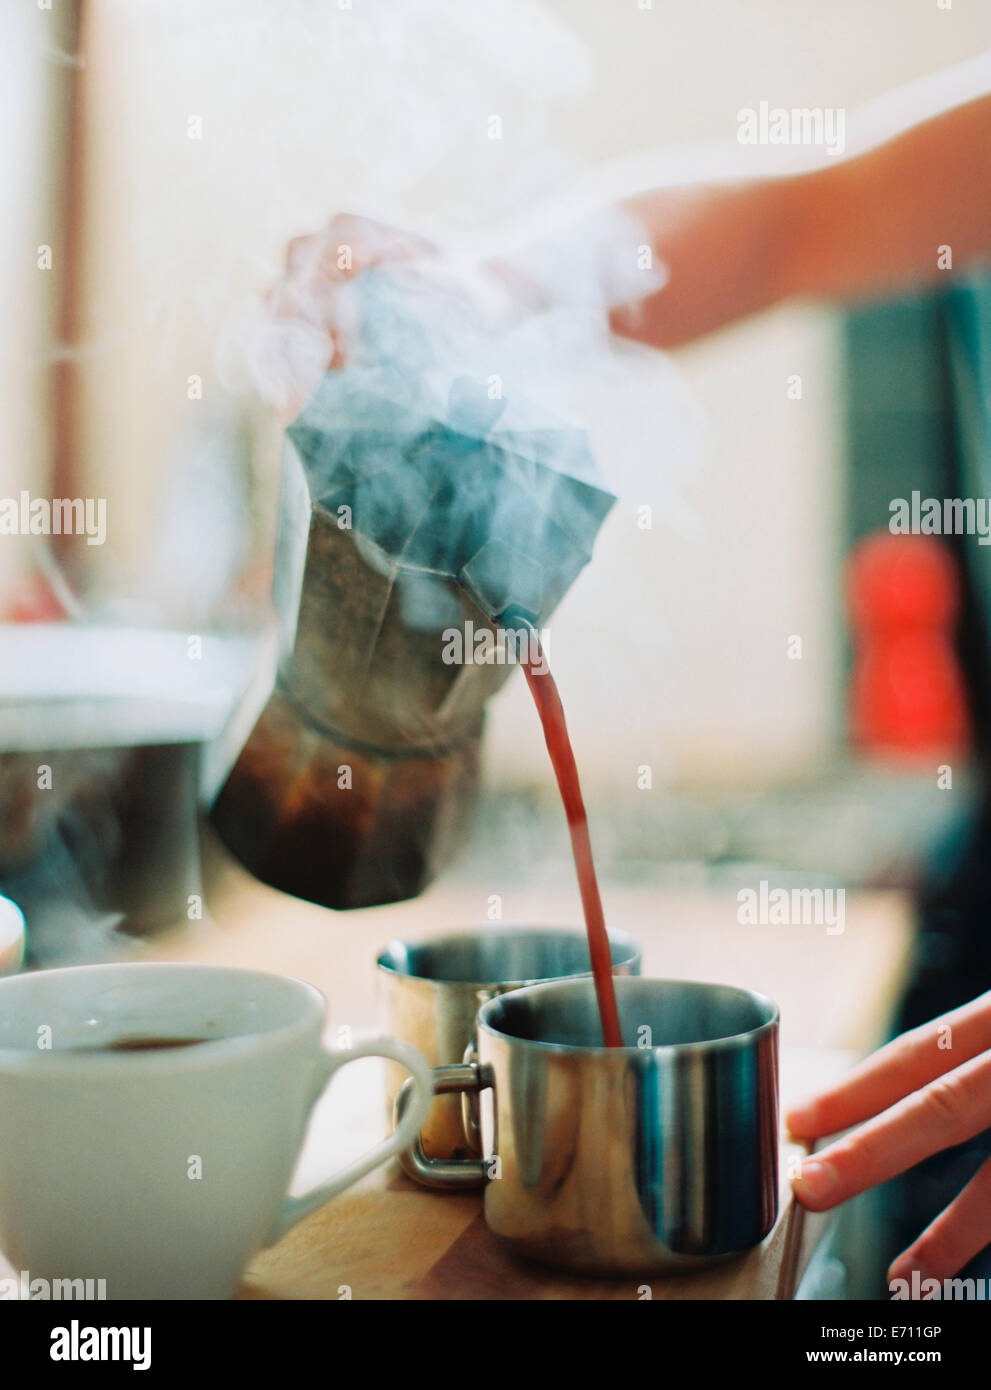 A person holding a coffee perculator and pouring hot coffee into cups. - Stock Image